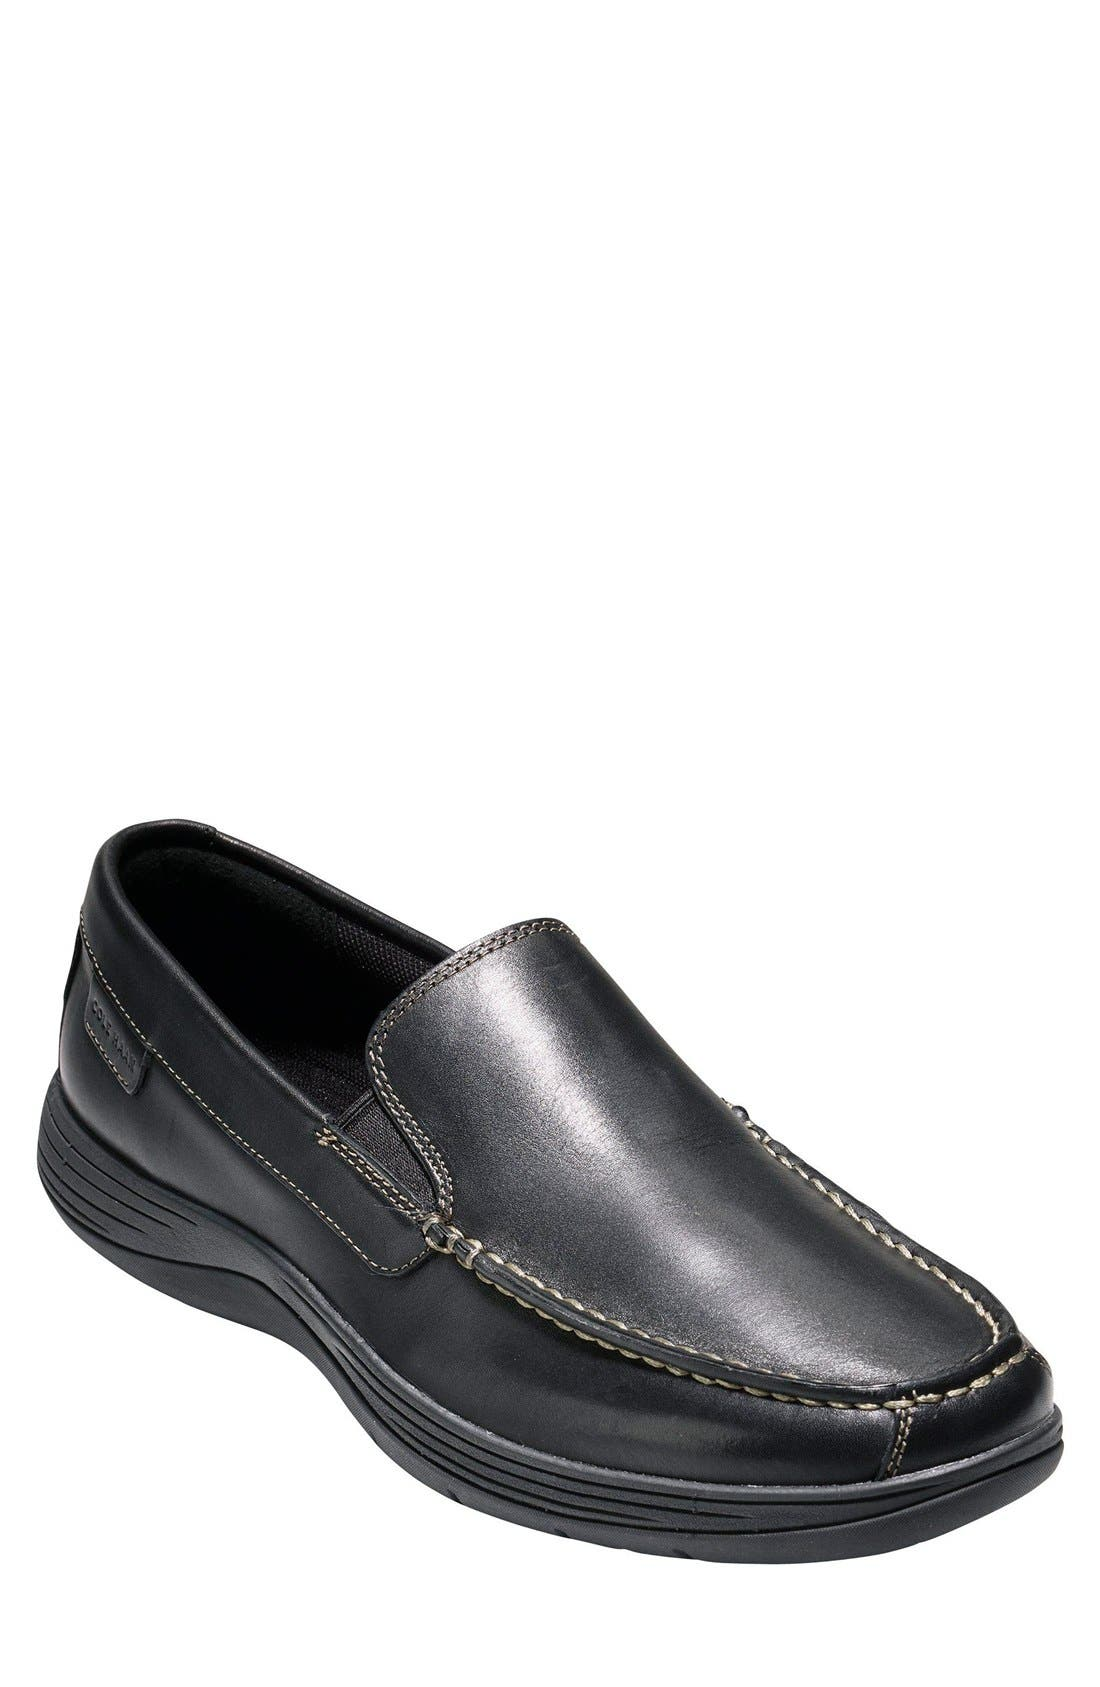 'Lewiston' Loafer,                             Main thumbnail 1, color,                             Black